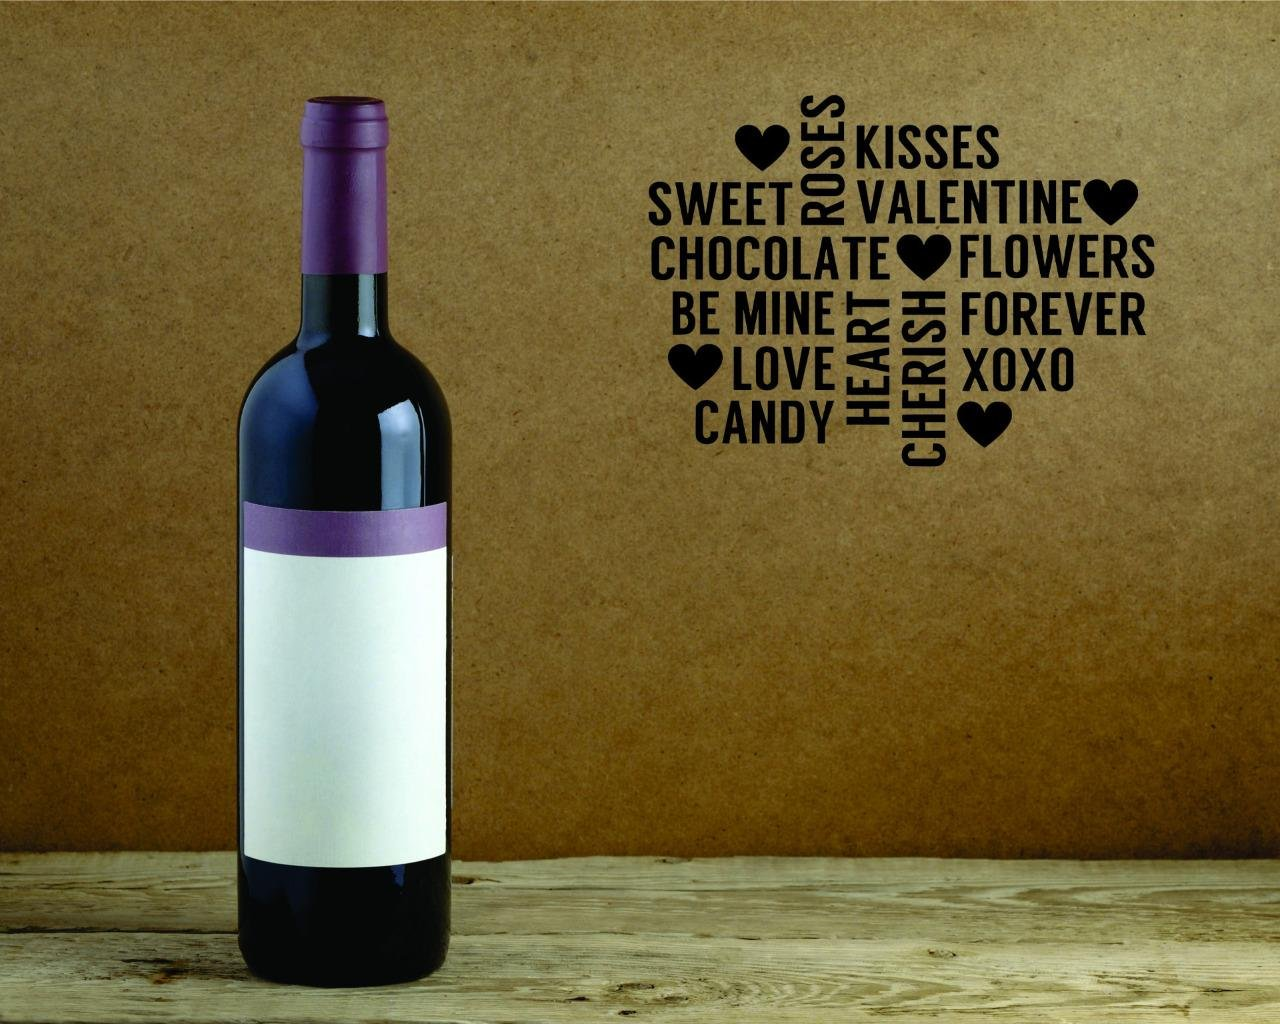 Black Size:18 x 18 Inches Design with Vinyl Moti 2574 3 Decal Wall Sticker Kisses Valentine Chocolate Be Mine Forever Love Heart Candy Holiday Seasonal Quote Color